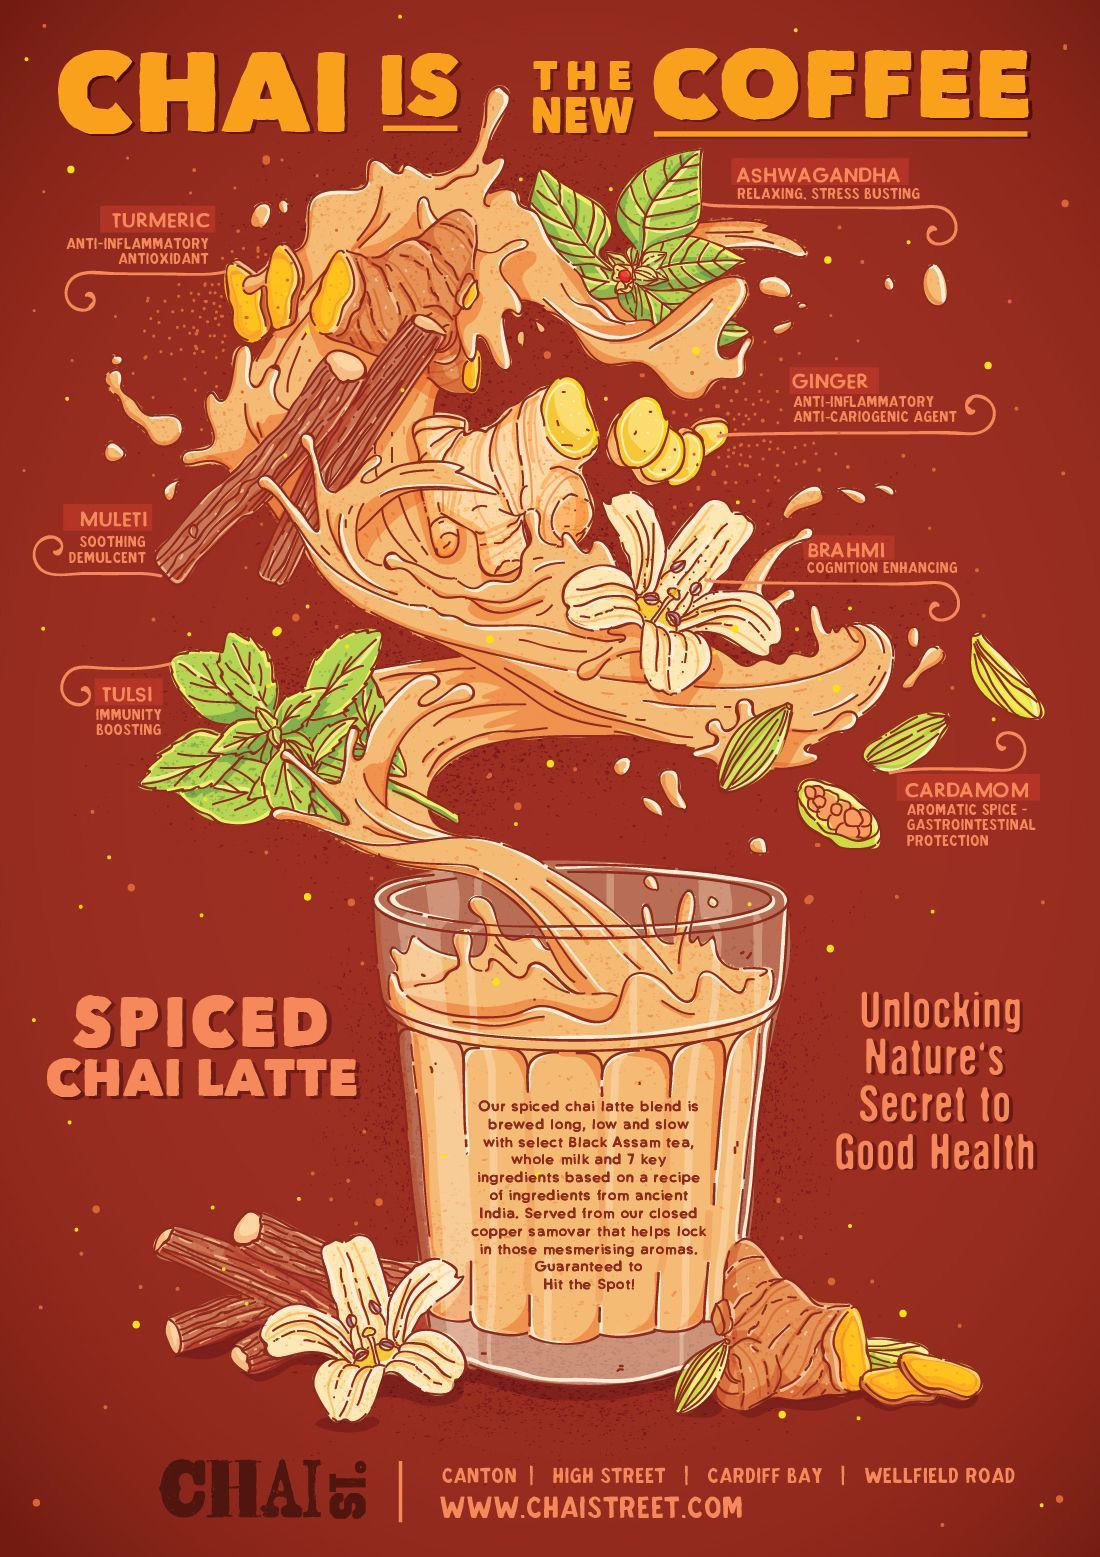 Handdrawn Illustration And Infographic Poster For A Chai Tea Beverage Infographic Illustrati In 2020 Infographic Illustration Infographic Poster Food Poster Design